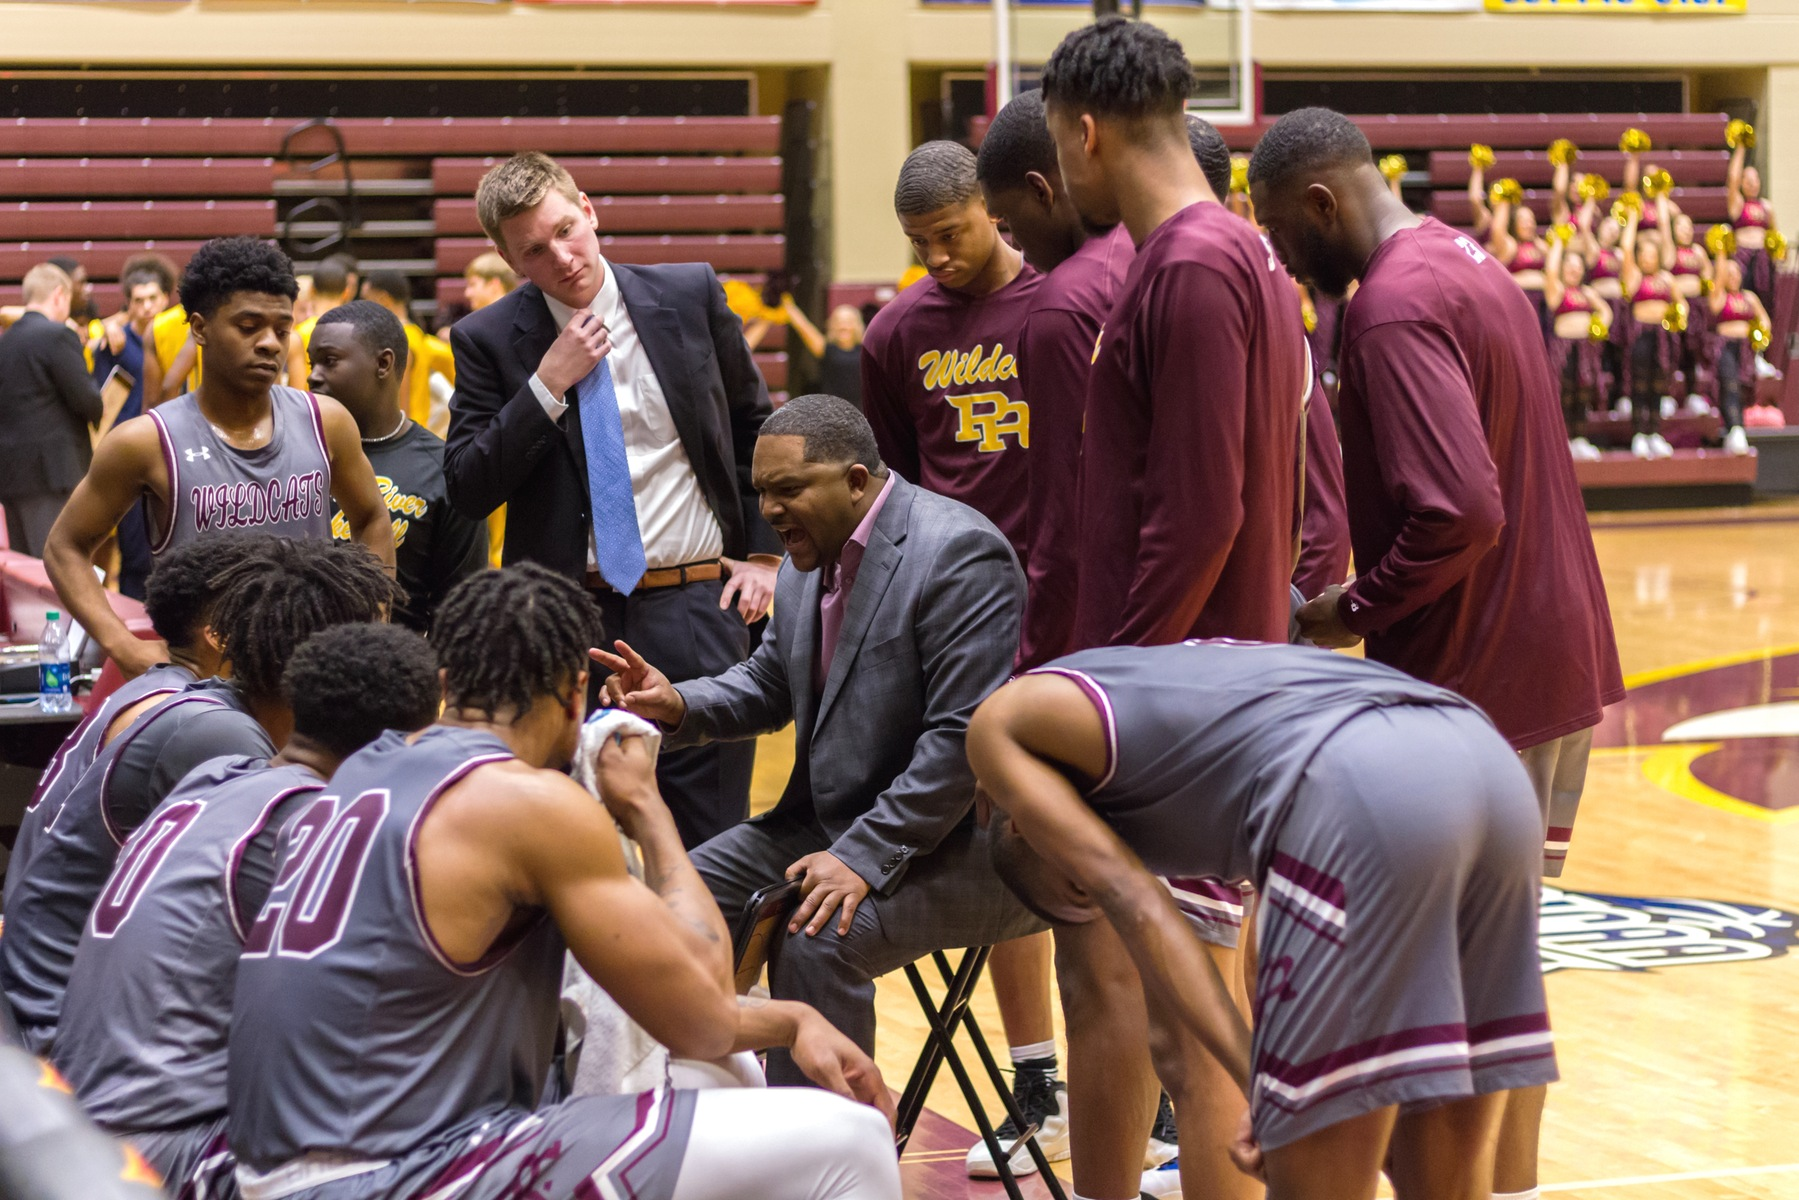 Pearl River fell to Gulf Coast 65-62 on Thursday, Feb. 14, 2019 at Marvin R. White Coliseum in Poplarville, Miss. (BRETT RUSS/PRCC ATHLETICS).